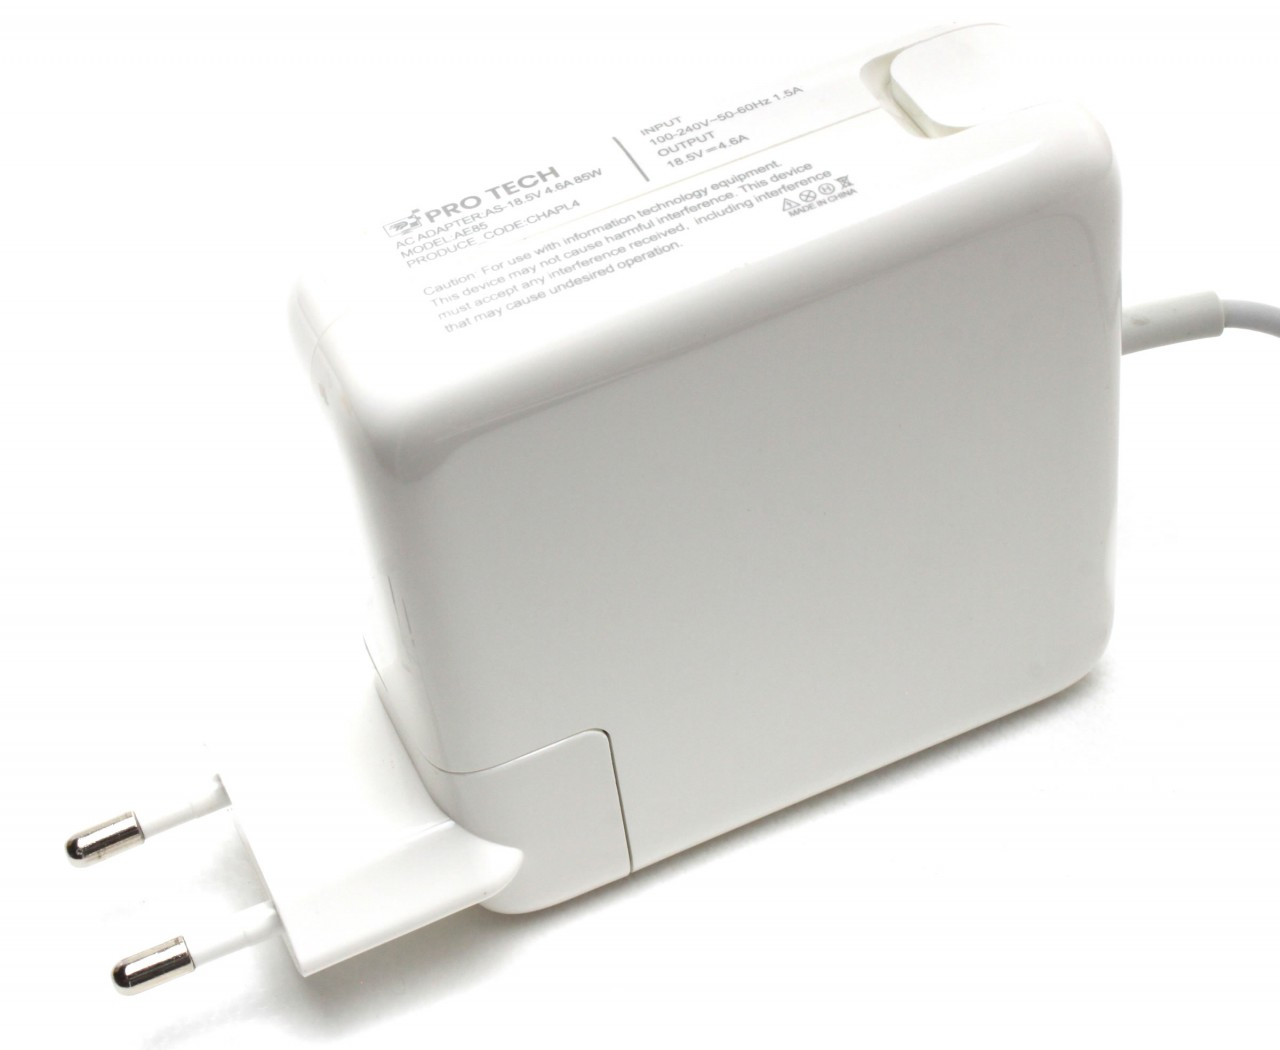 Incarcator Apple A1222 85W Replacement imagine